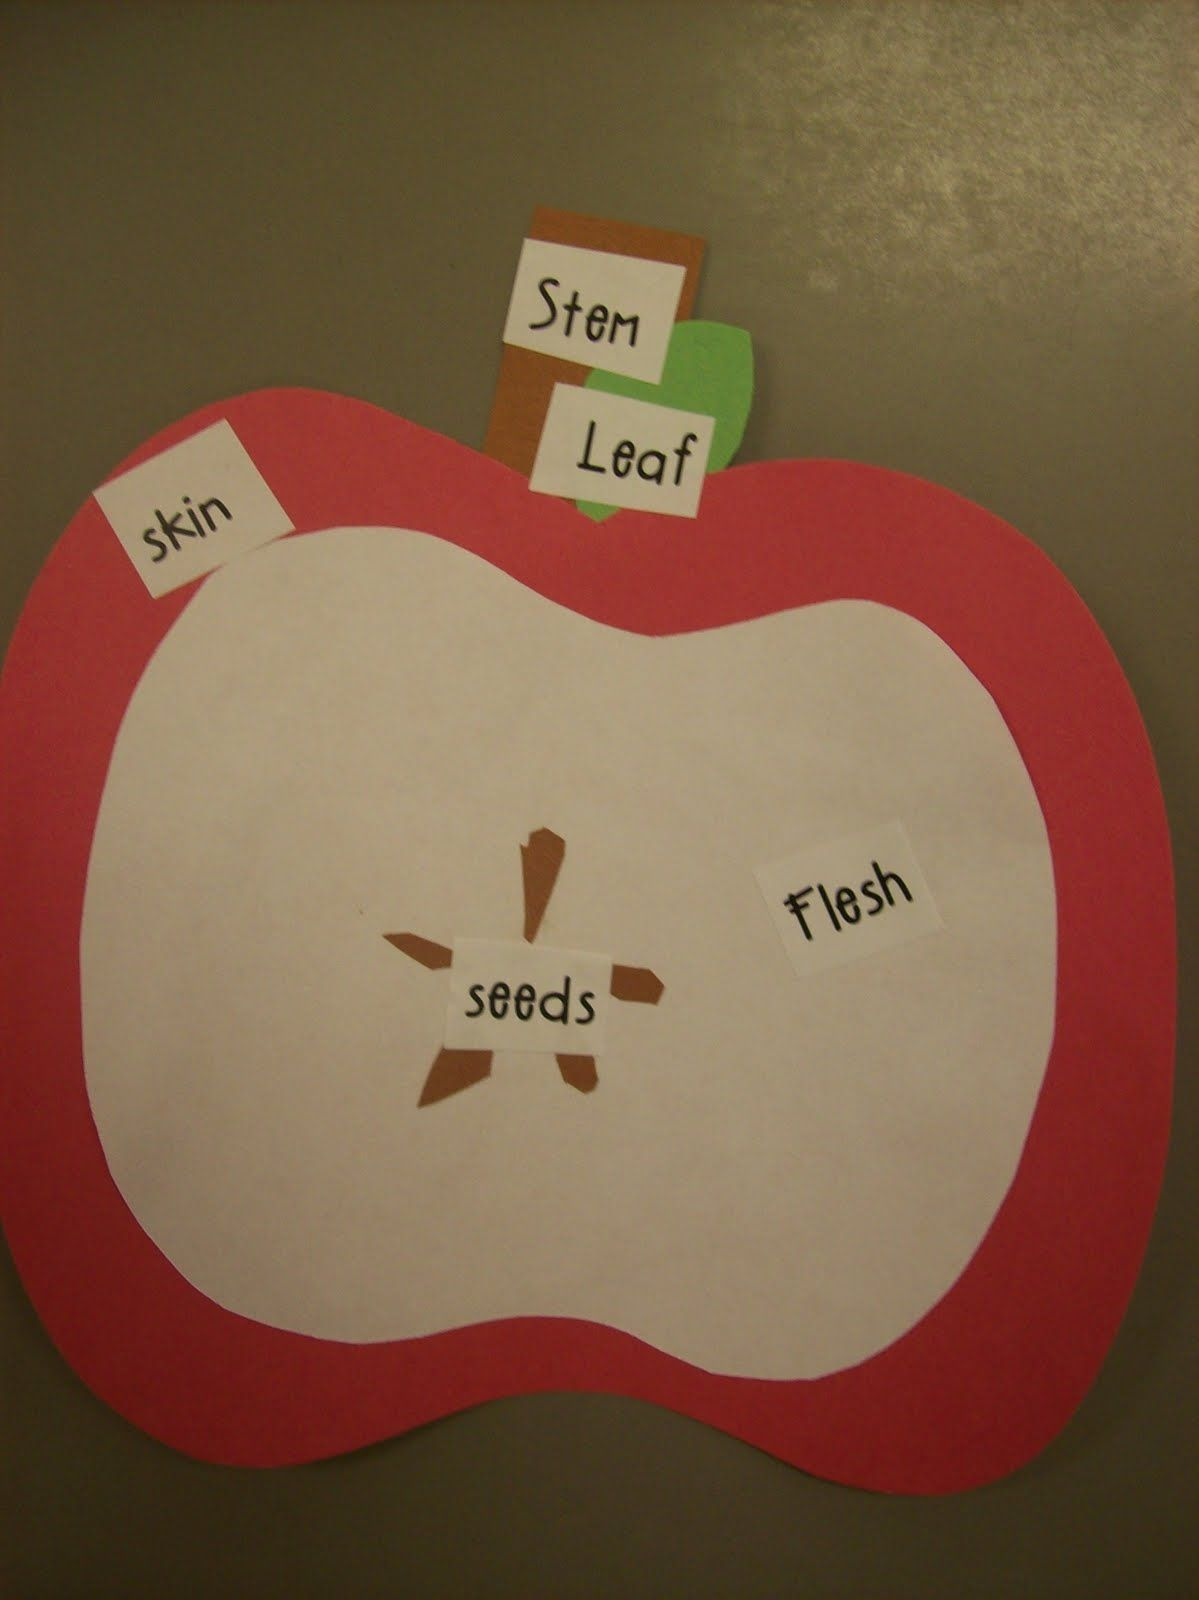 Label Parts Of An Apple